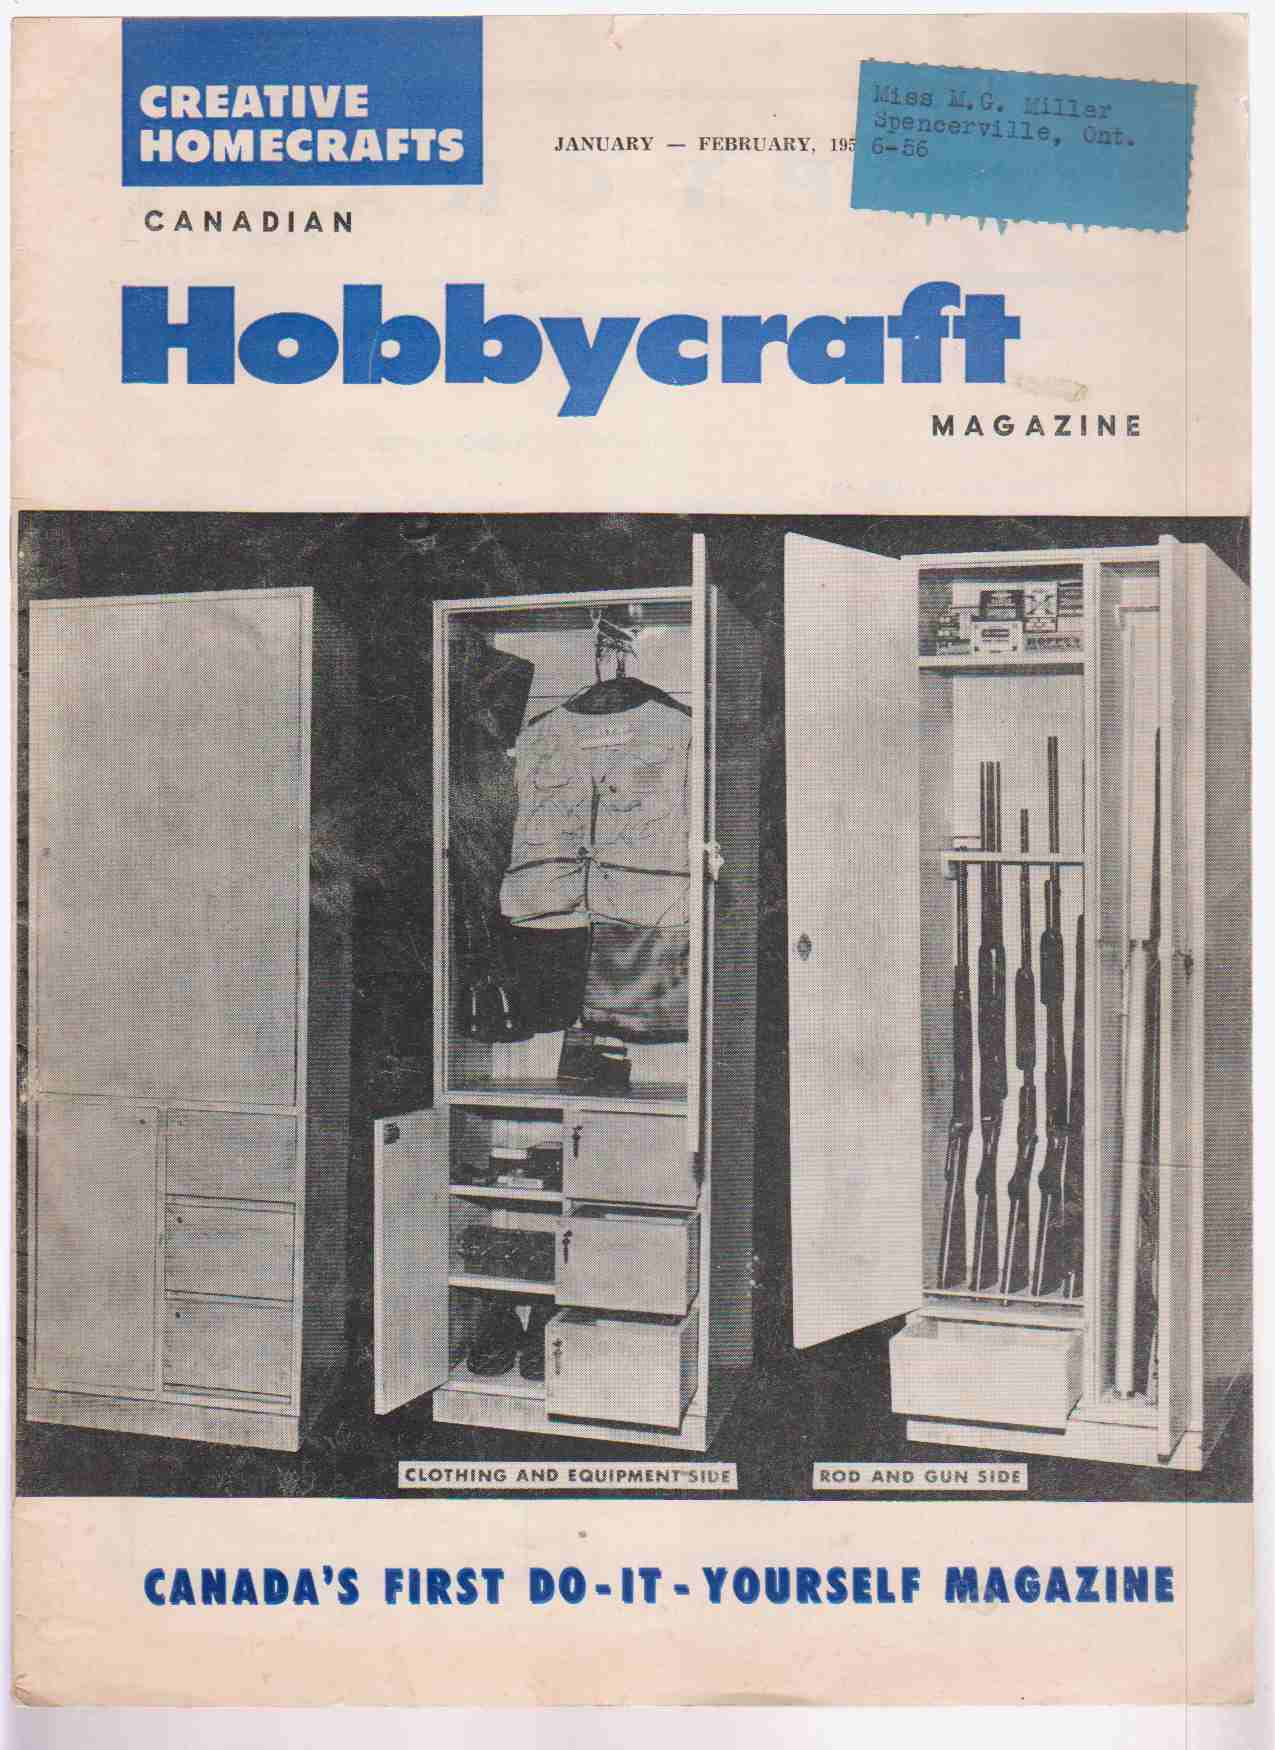 Image for Canadian Hobbycraft Magazine January - February 1956 Volume 11 Number 1